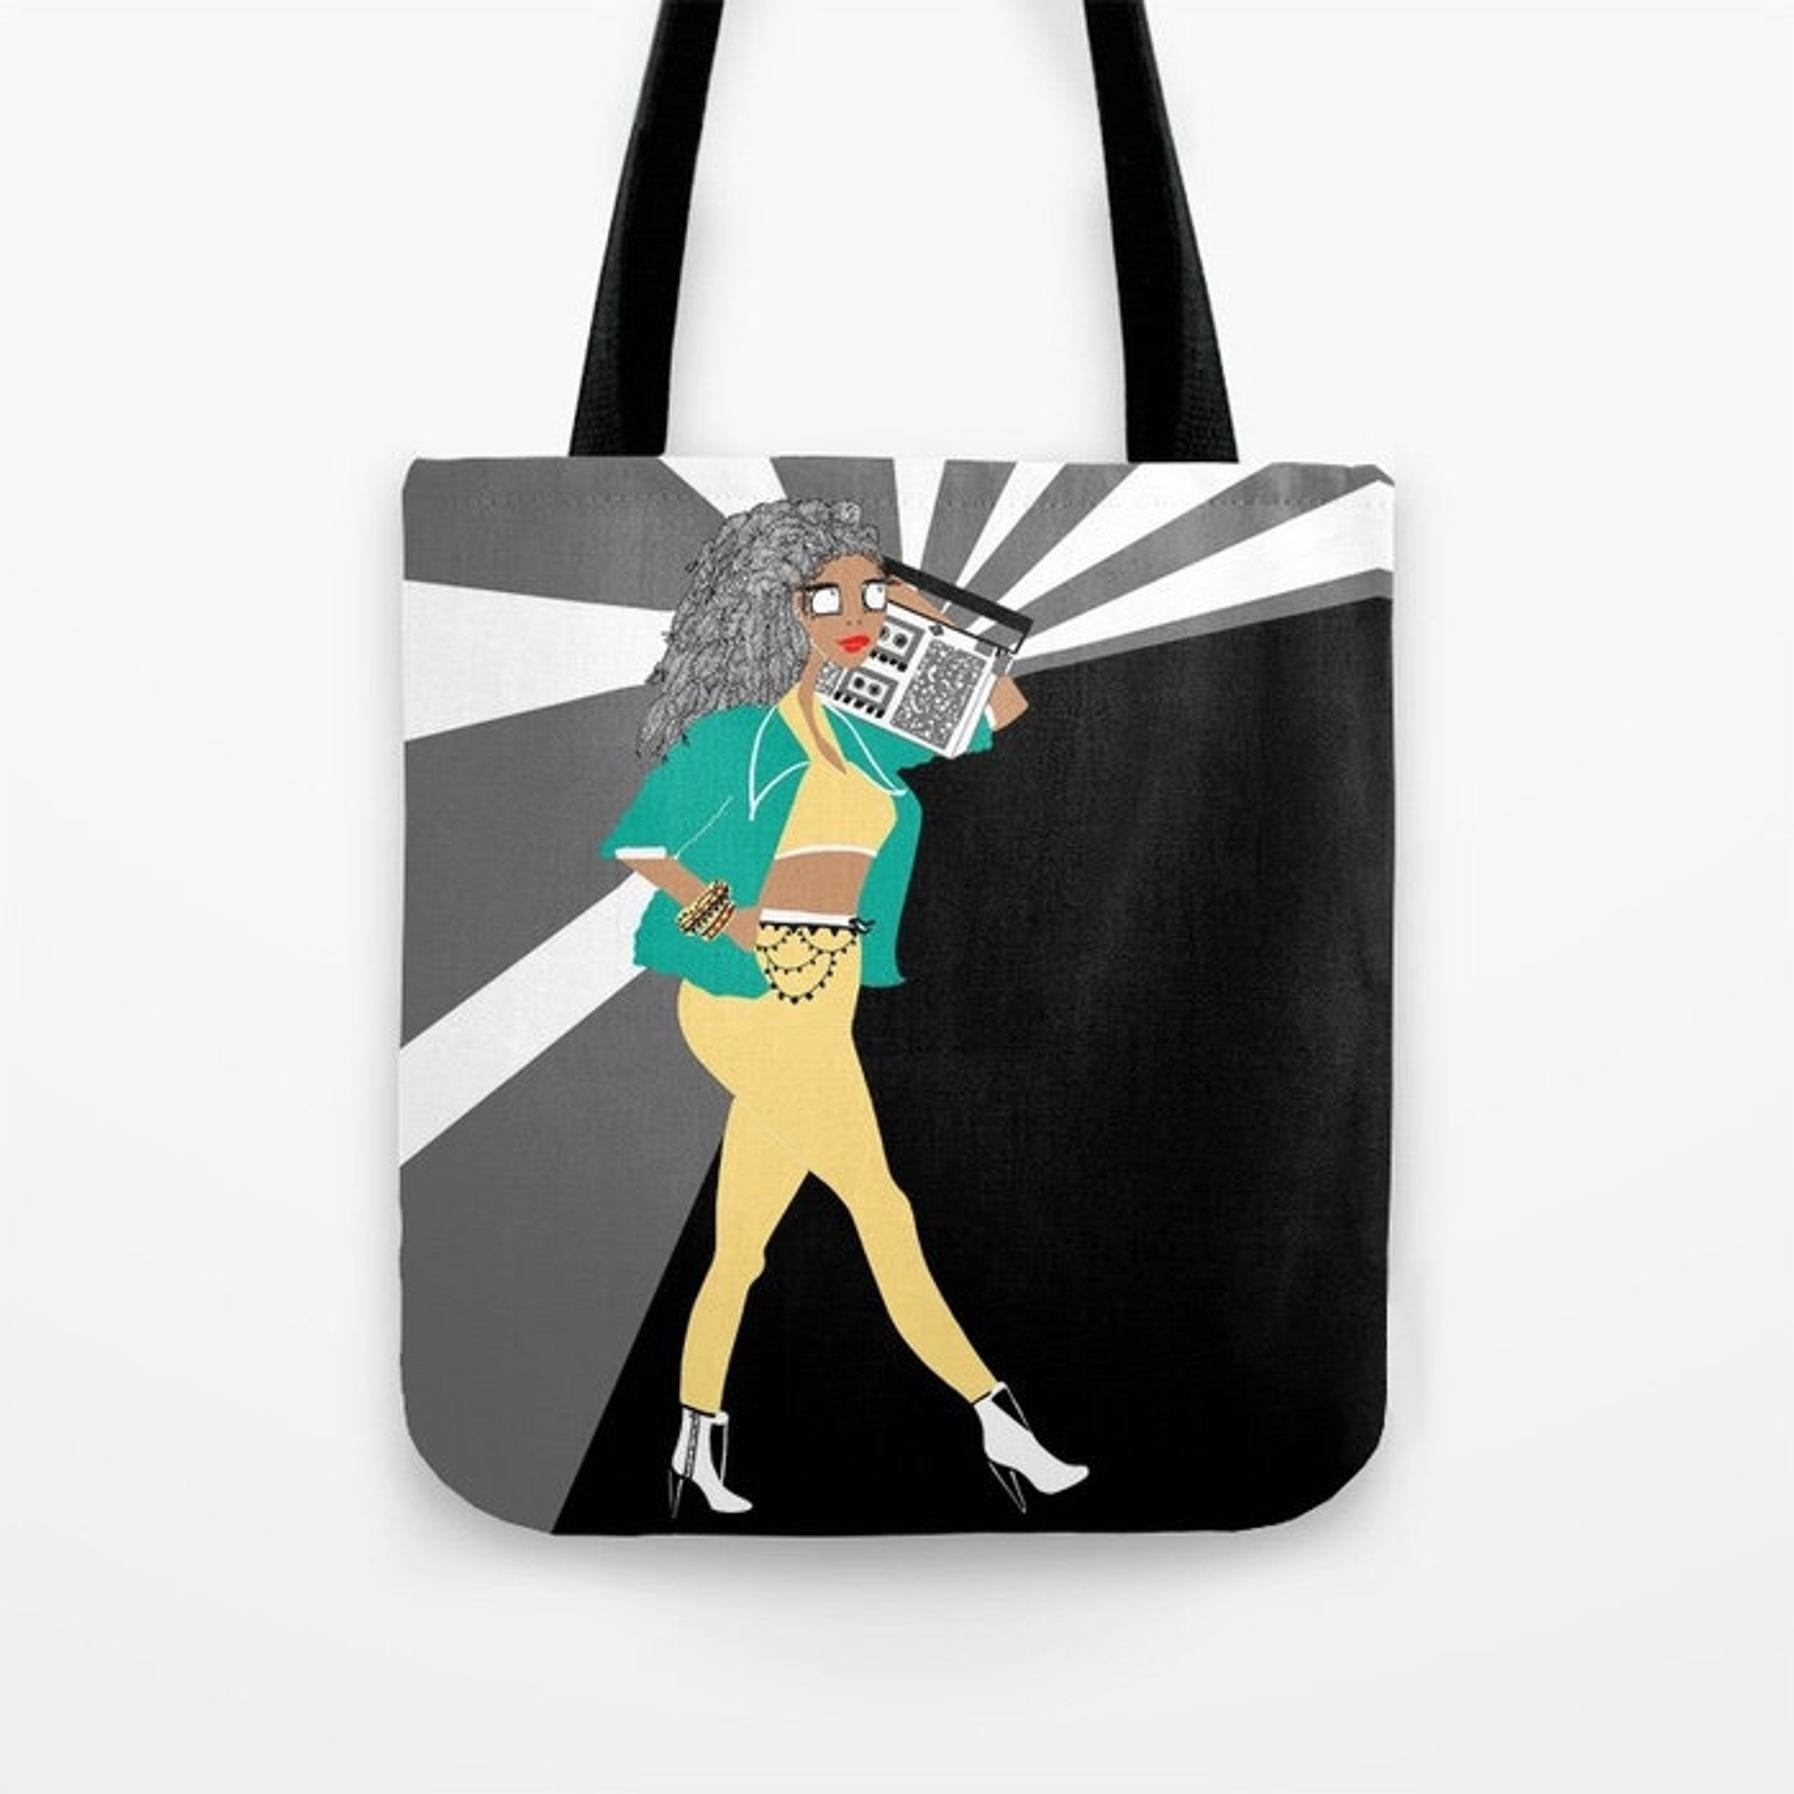 The tote with an illustration of a woman walking with a boombox on her shoulder